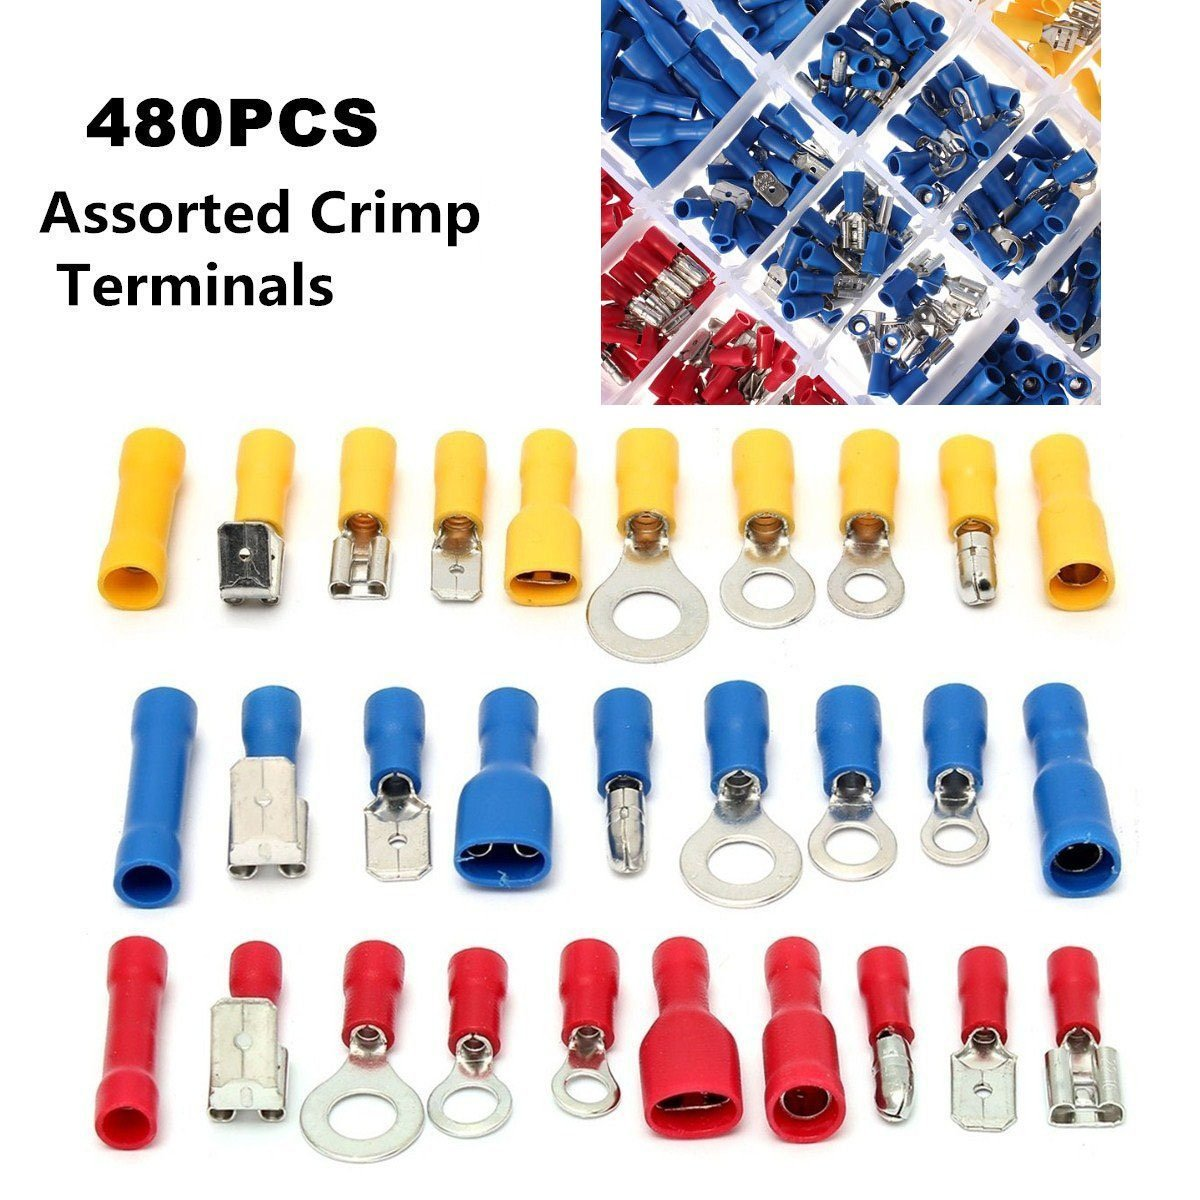 GekBot Wire Crimp Connectors 480pcs Electrical Automotive Wire Assortment Connector Kit Non Insulated Solderless Terminal Repair Lug Kit Spade Ring Butt Male Female Assorted Set